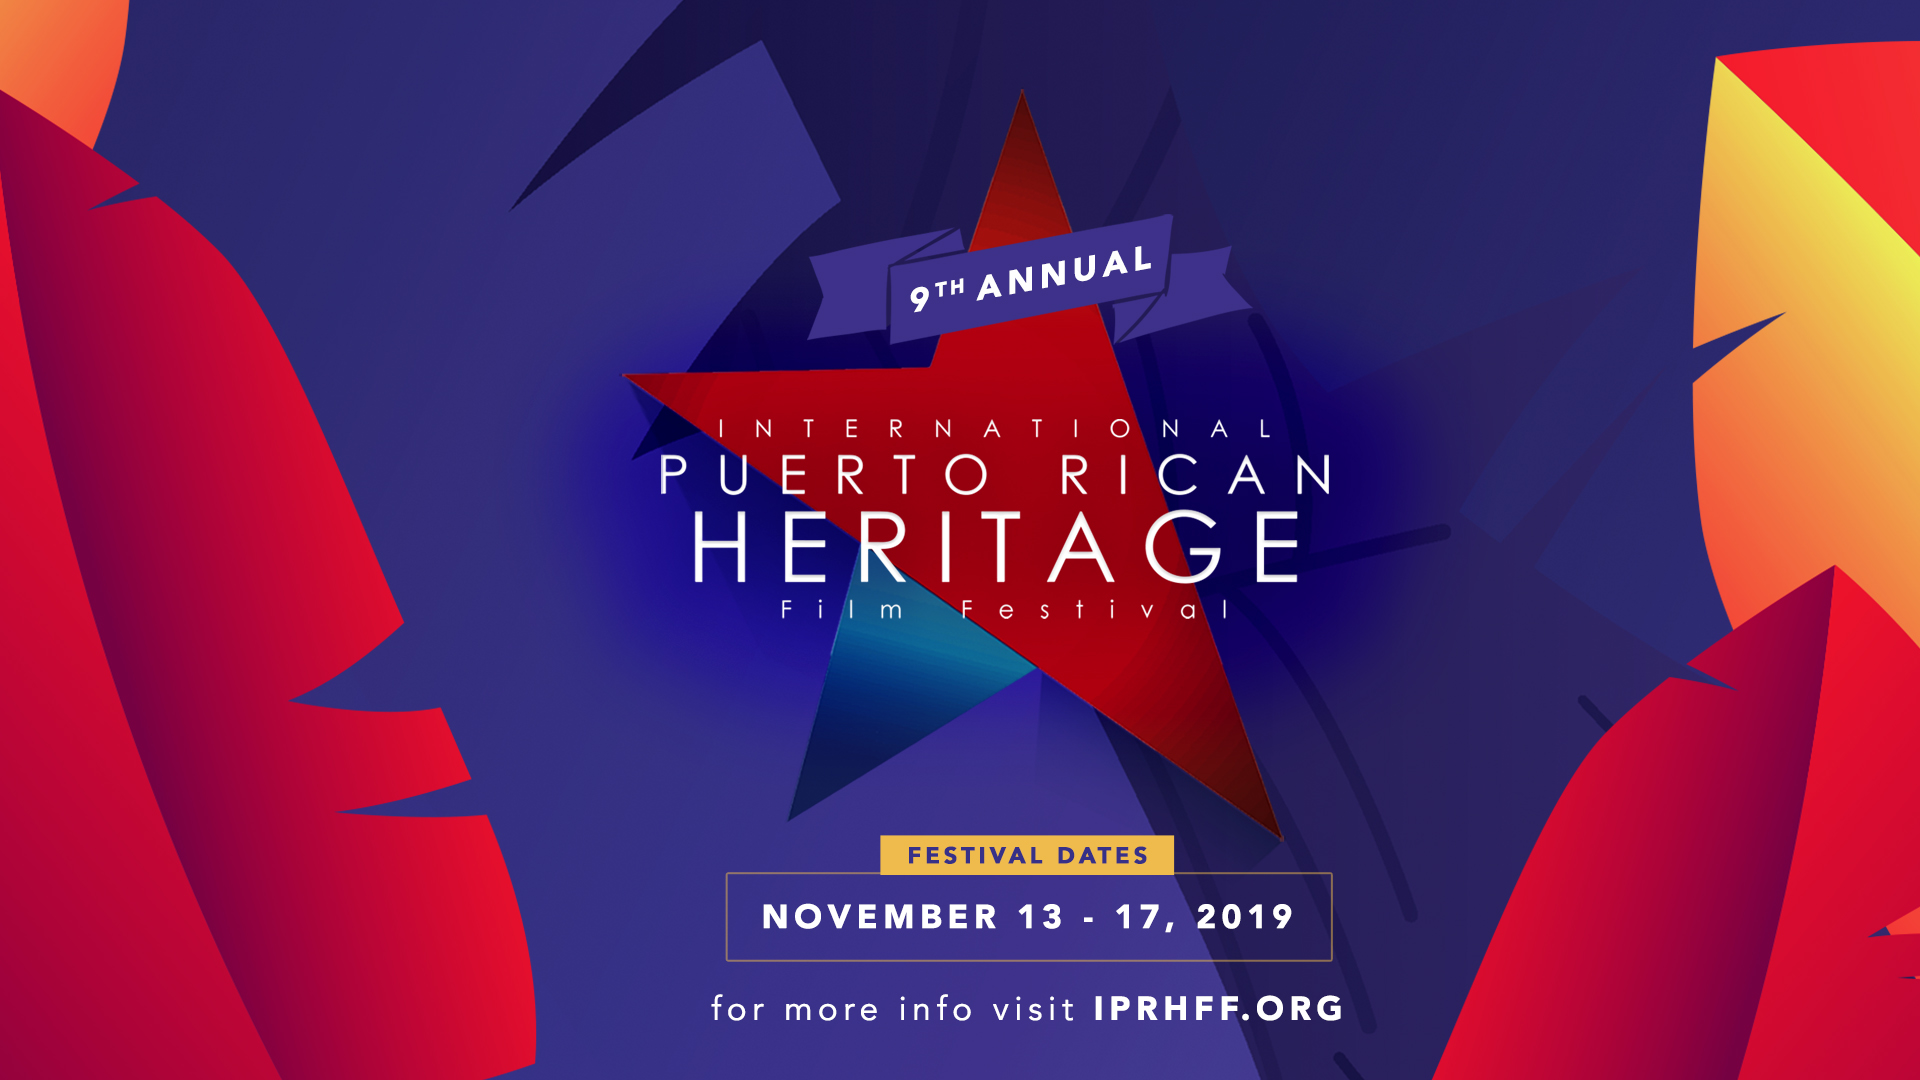 International Puerto Rican Heritage Film Festival 11/15